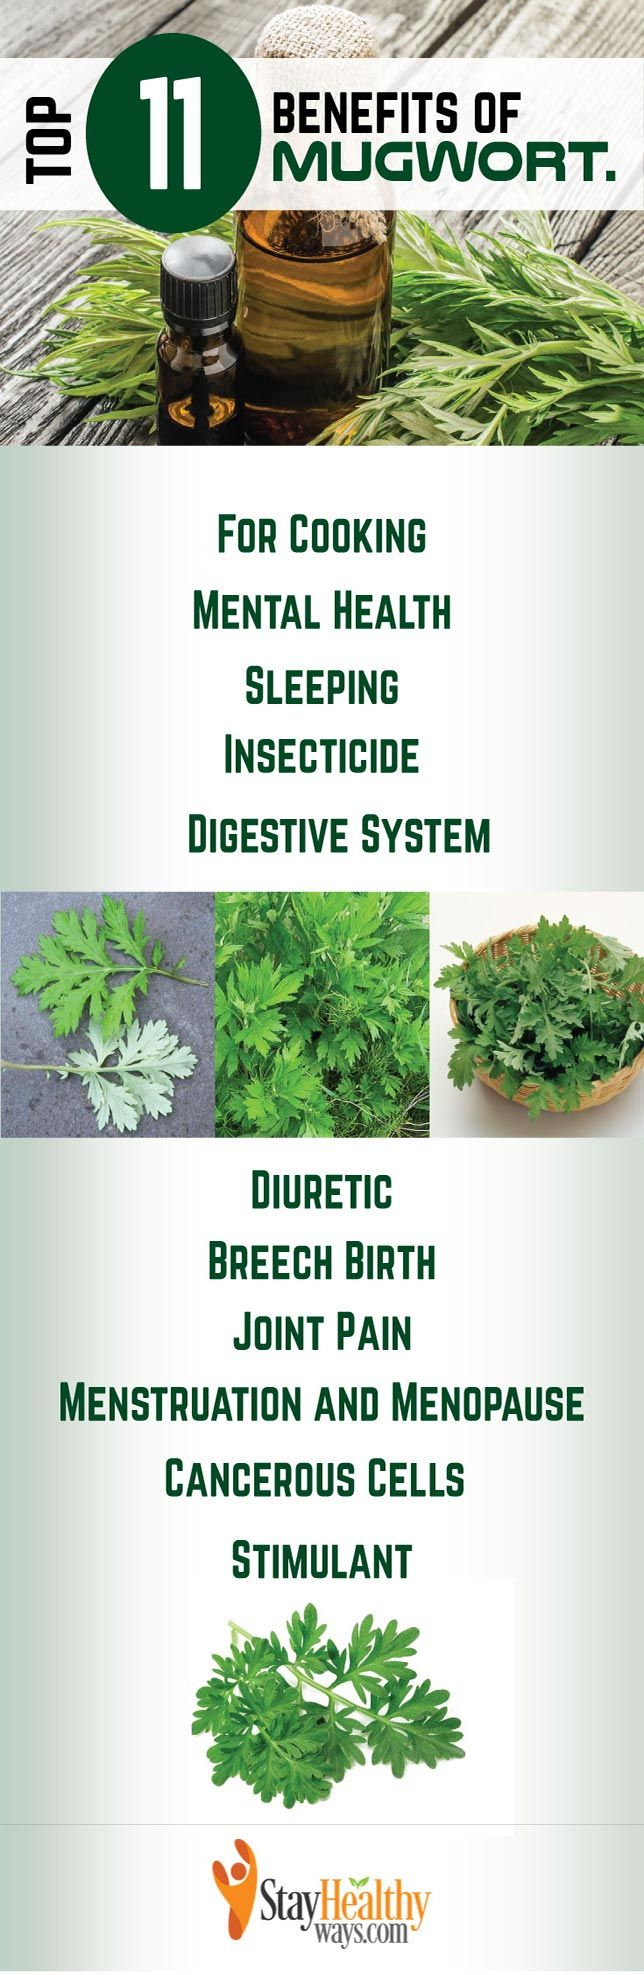 mugwort benefits infographic